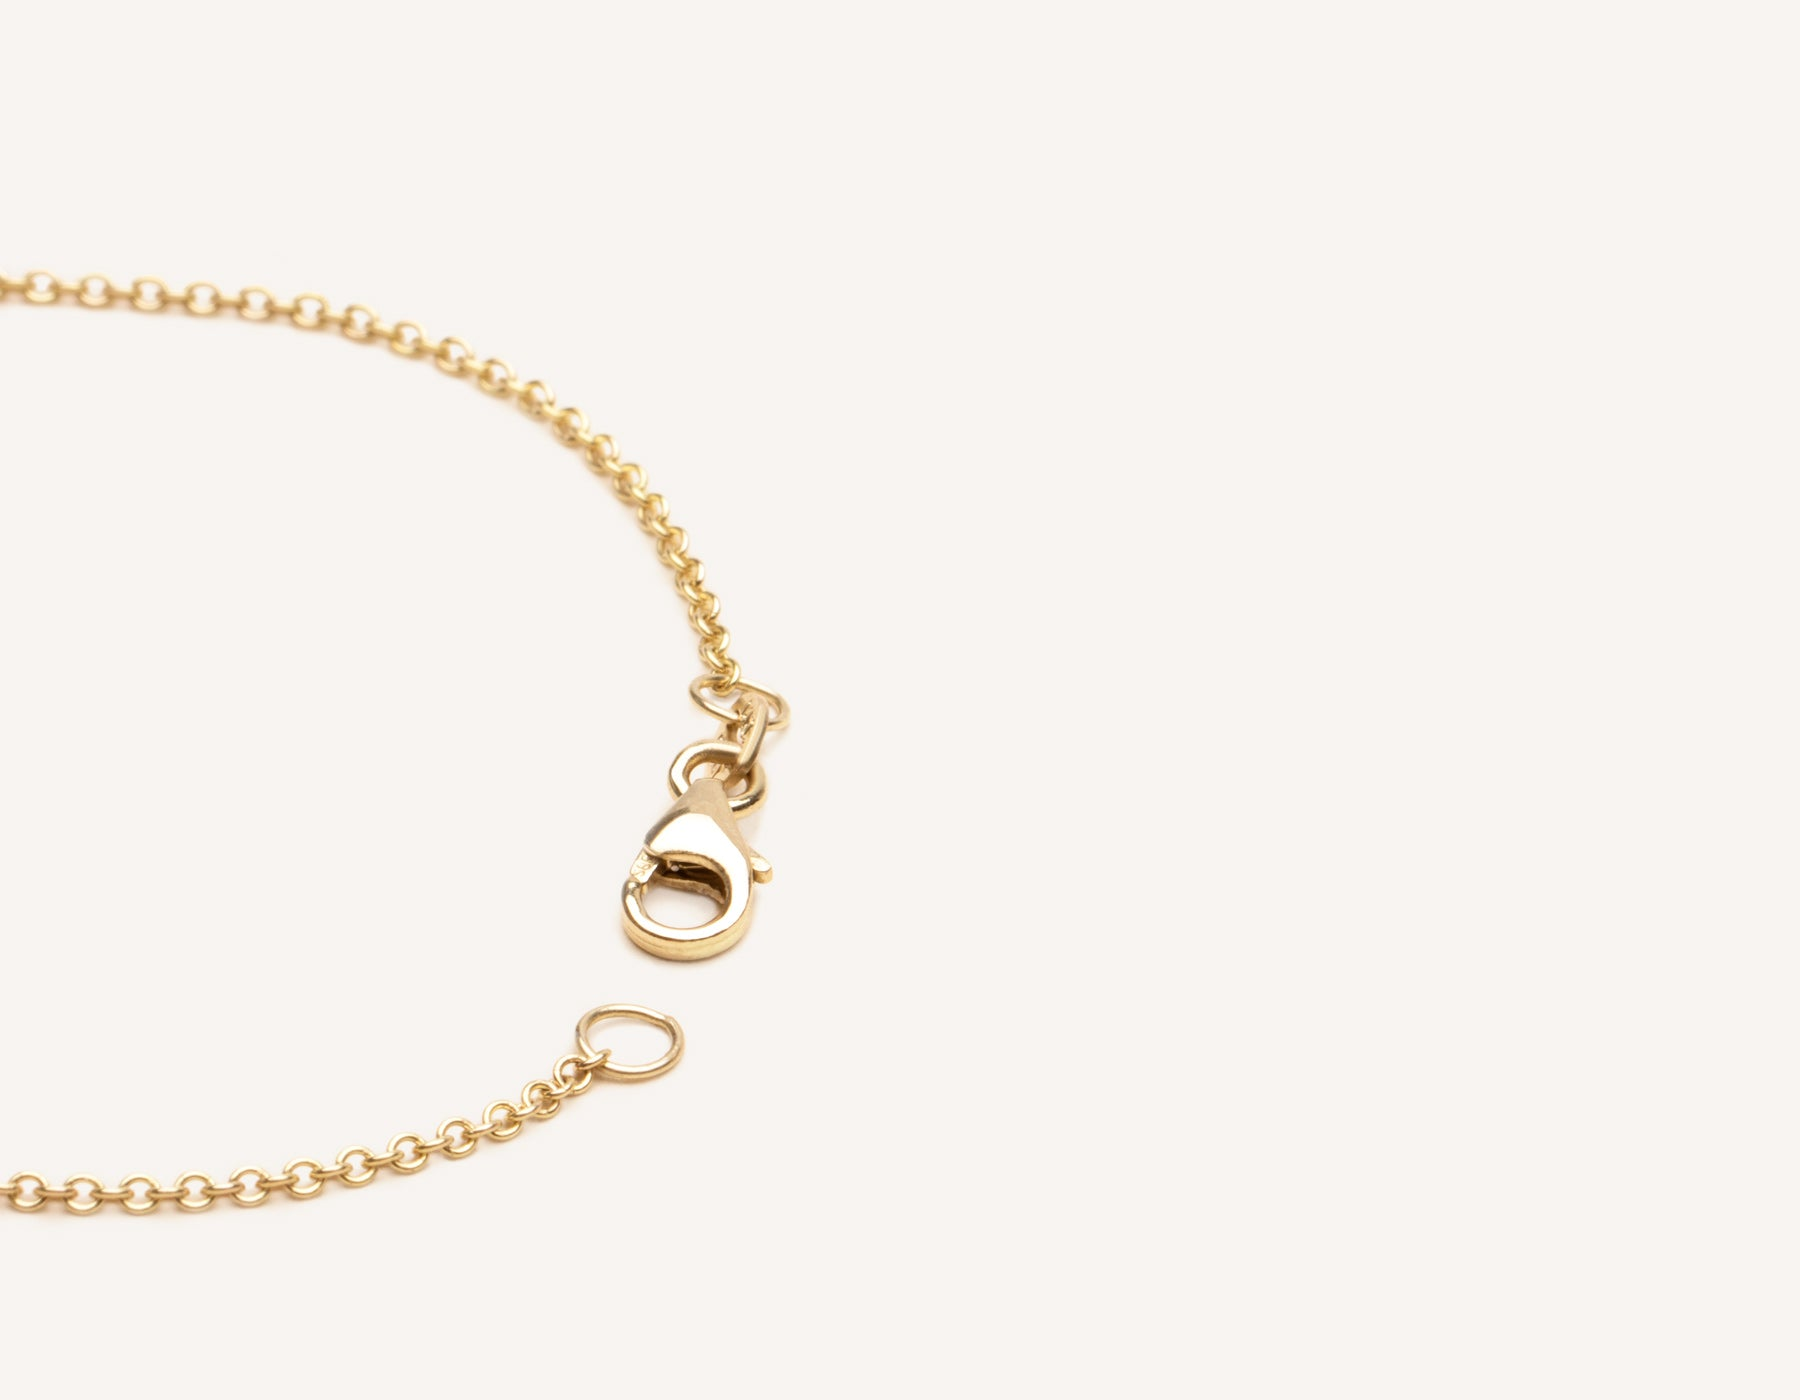 Vrai & Oro 14k solid gold bracelet lobster clasp on thin oval link chain, 14K Yellow Gold